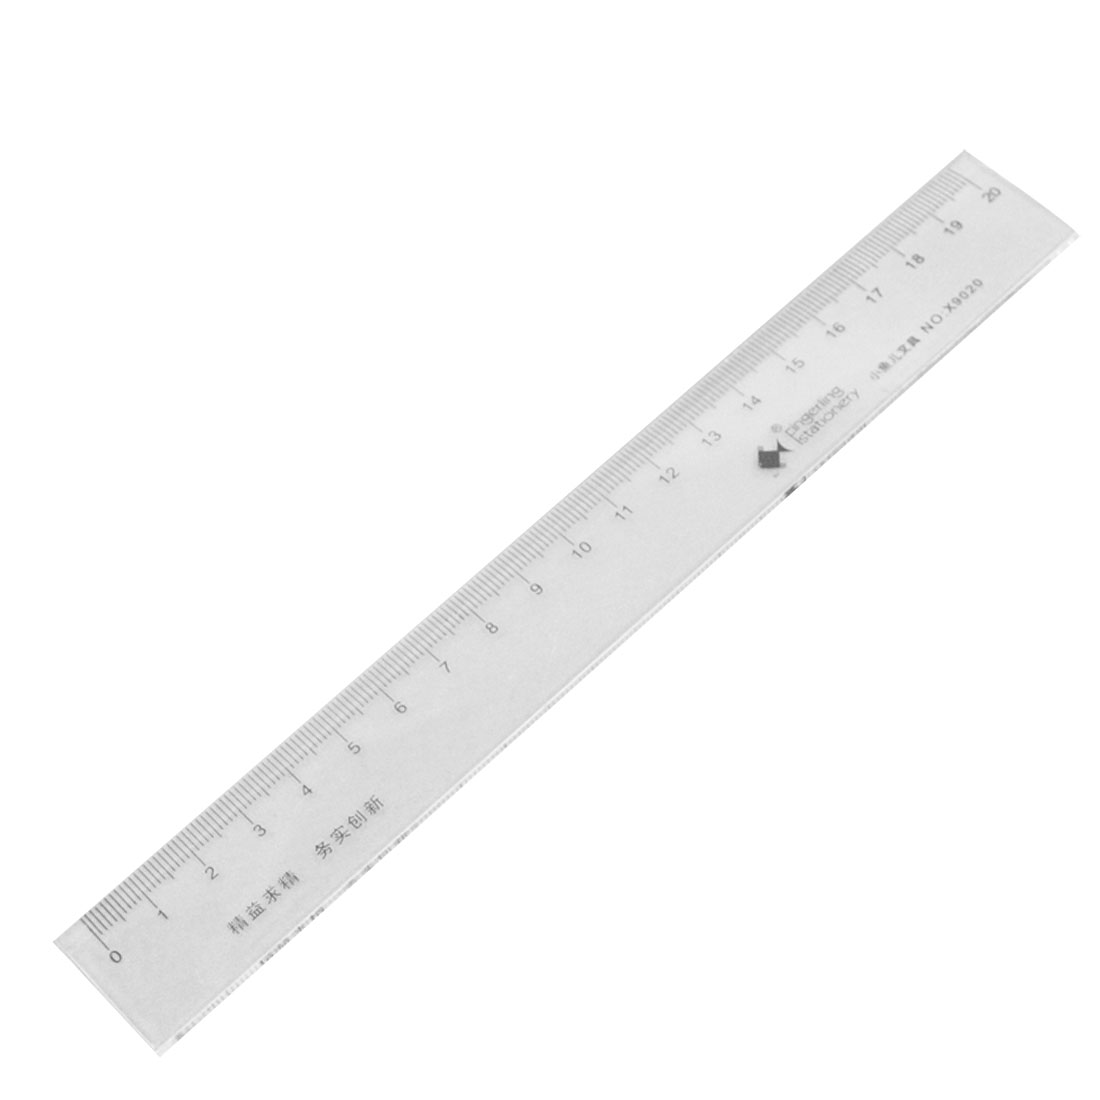 20cm 7.8 Inch Length Measure Clear Plastic Straight Edge Ruler 2 Pcs